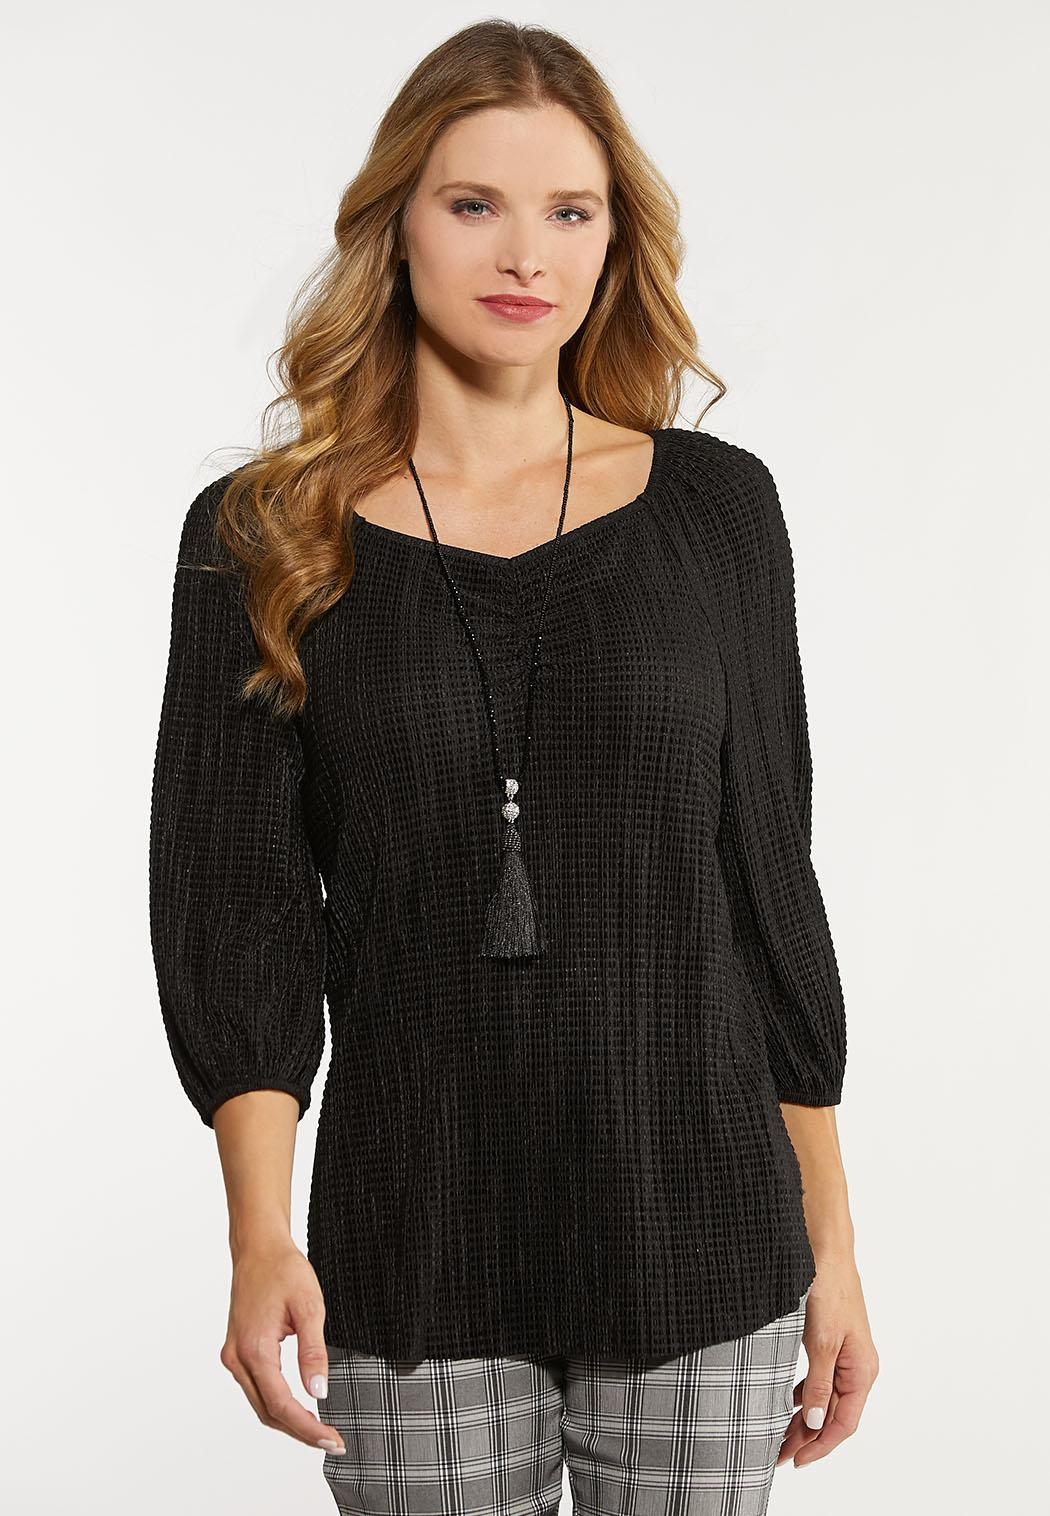 Plus Size Stretchy Textured Top